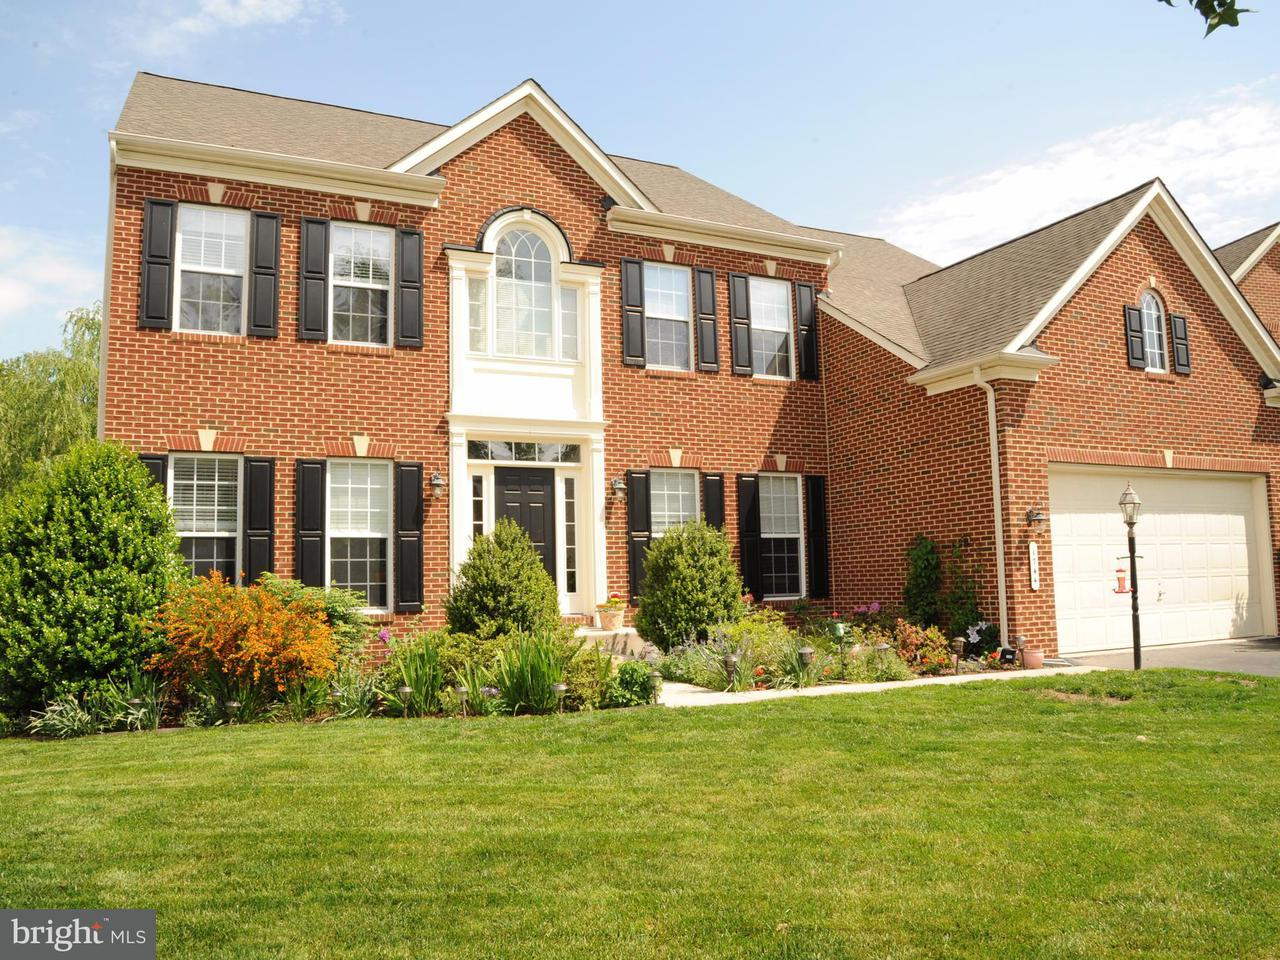 Single Family Home for Sale at 1744 ALLERFORD Drive 1744 ALLERFORD Drive Hanover, Maryland 21076 United States